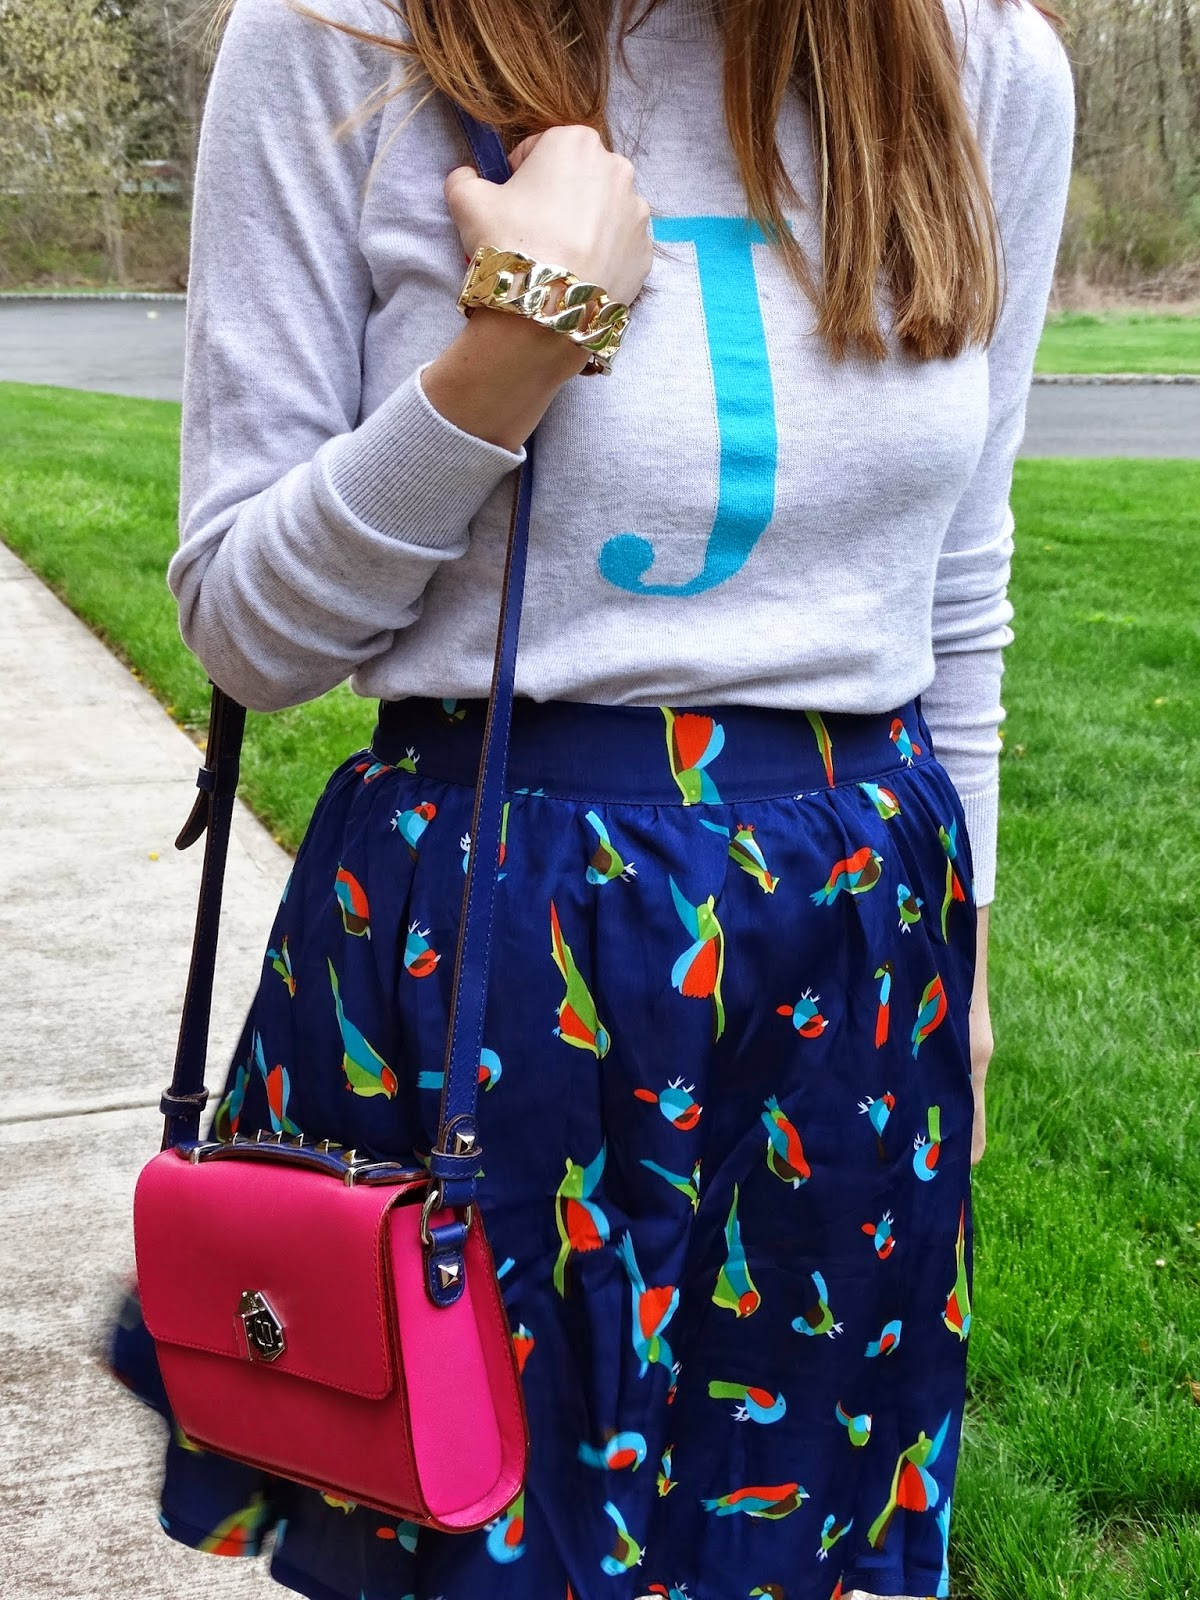 Rebecca Minkoff Bag, Old Navy Sweater, Wizards of the West Skirt - House Of Jeffers blog